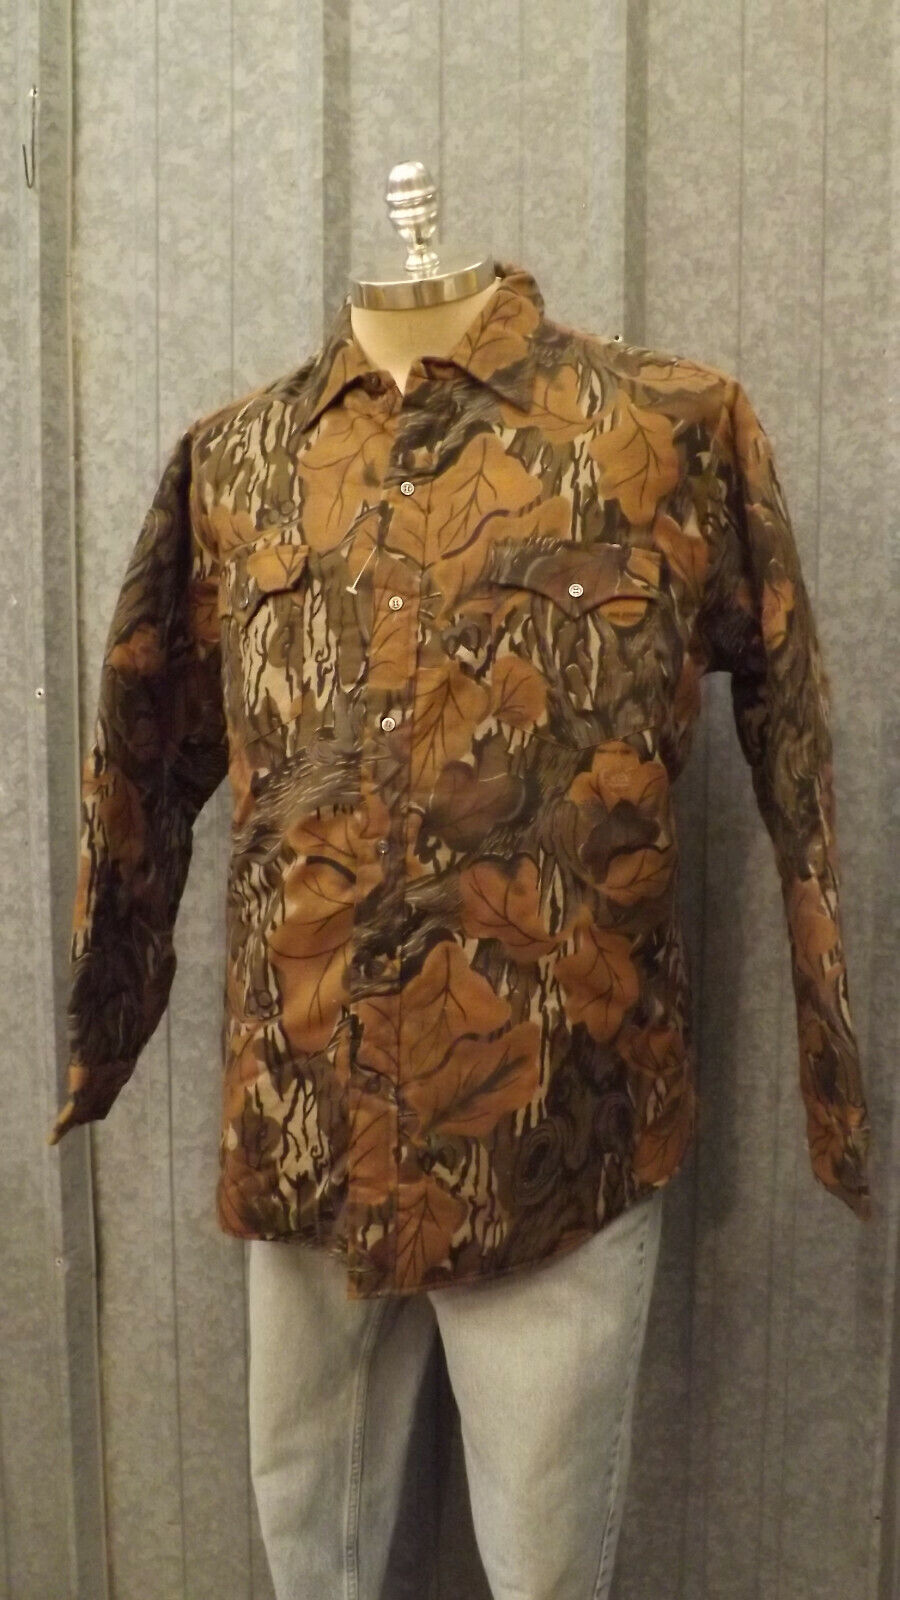 Vtg NEW Whitewater Outdoors Mossy Oak Fall Foliage Camo Quiltd Shirt sz L